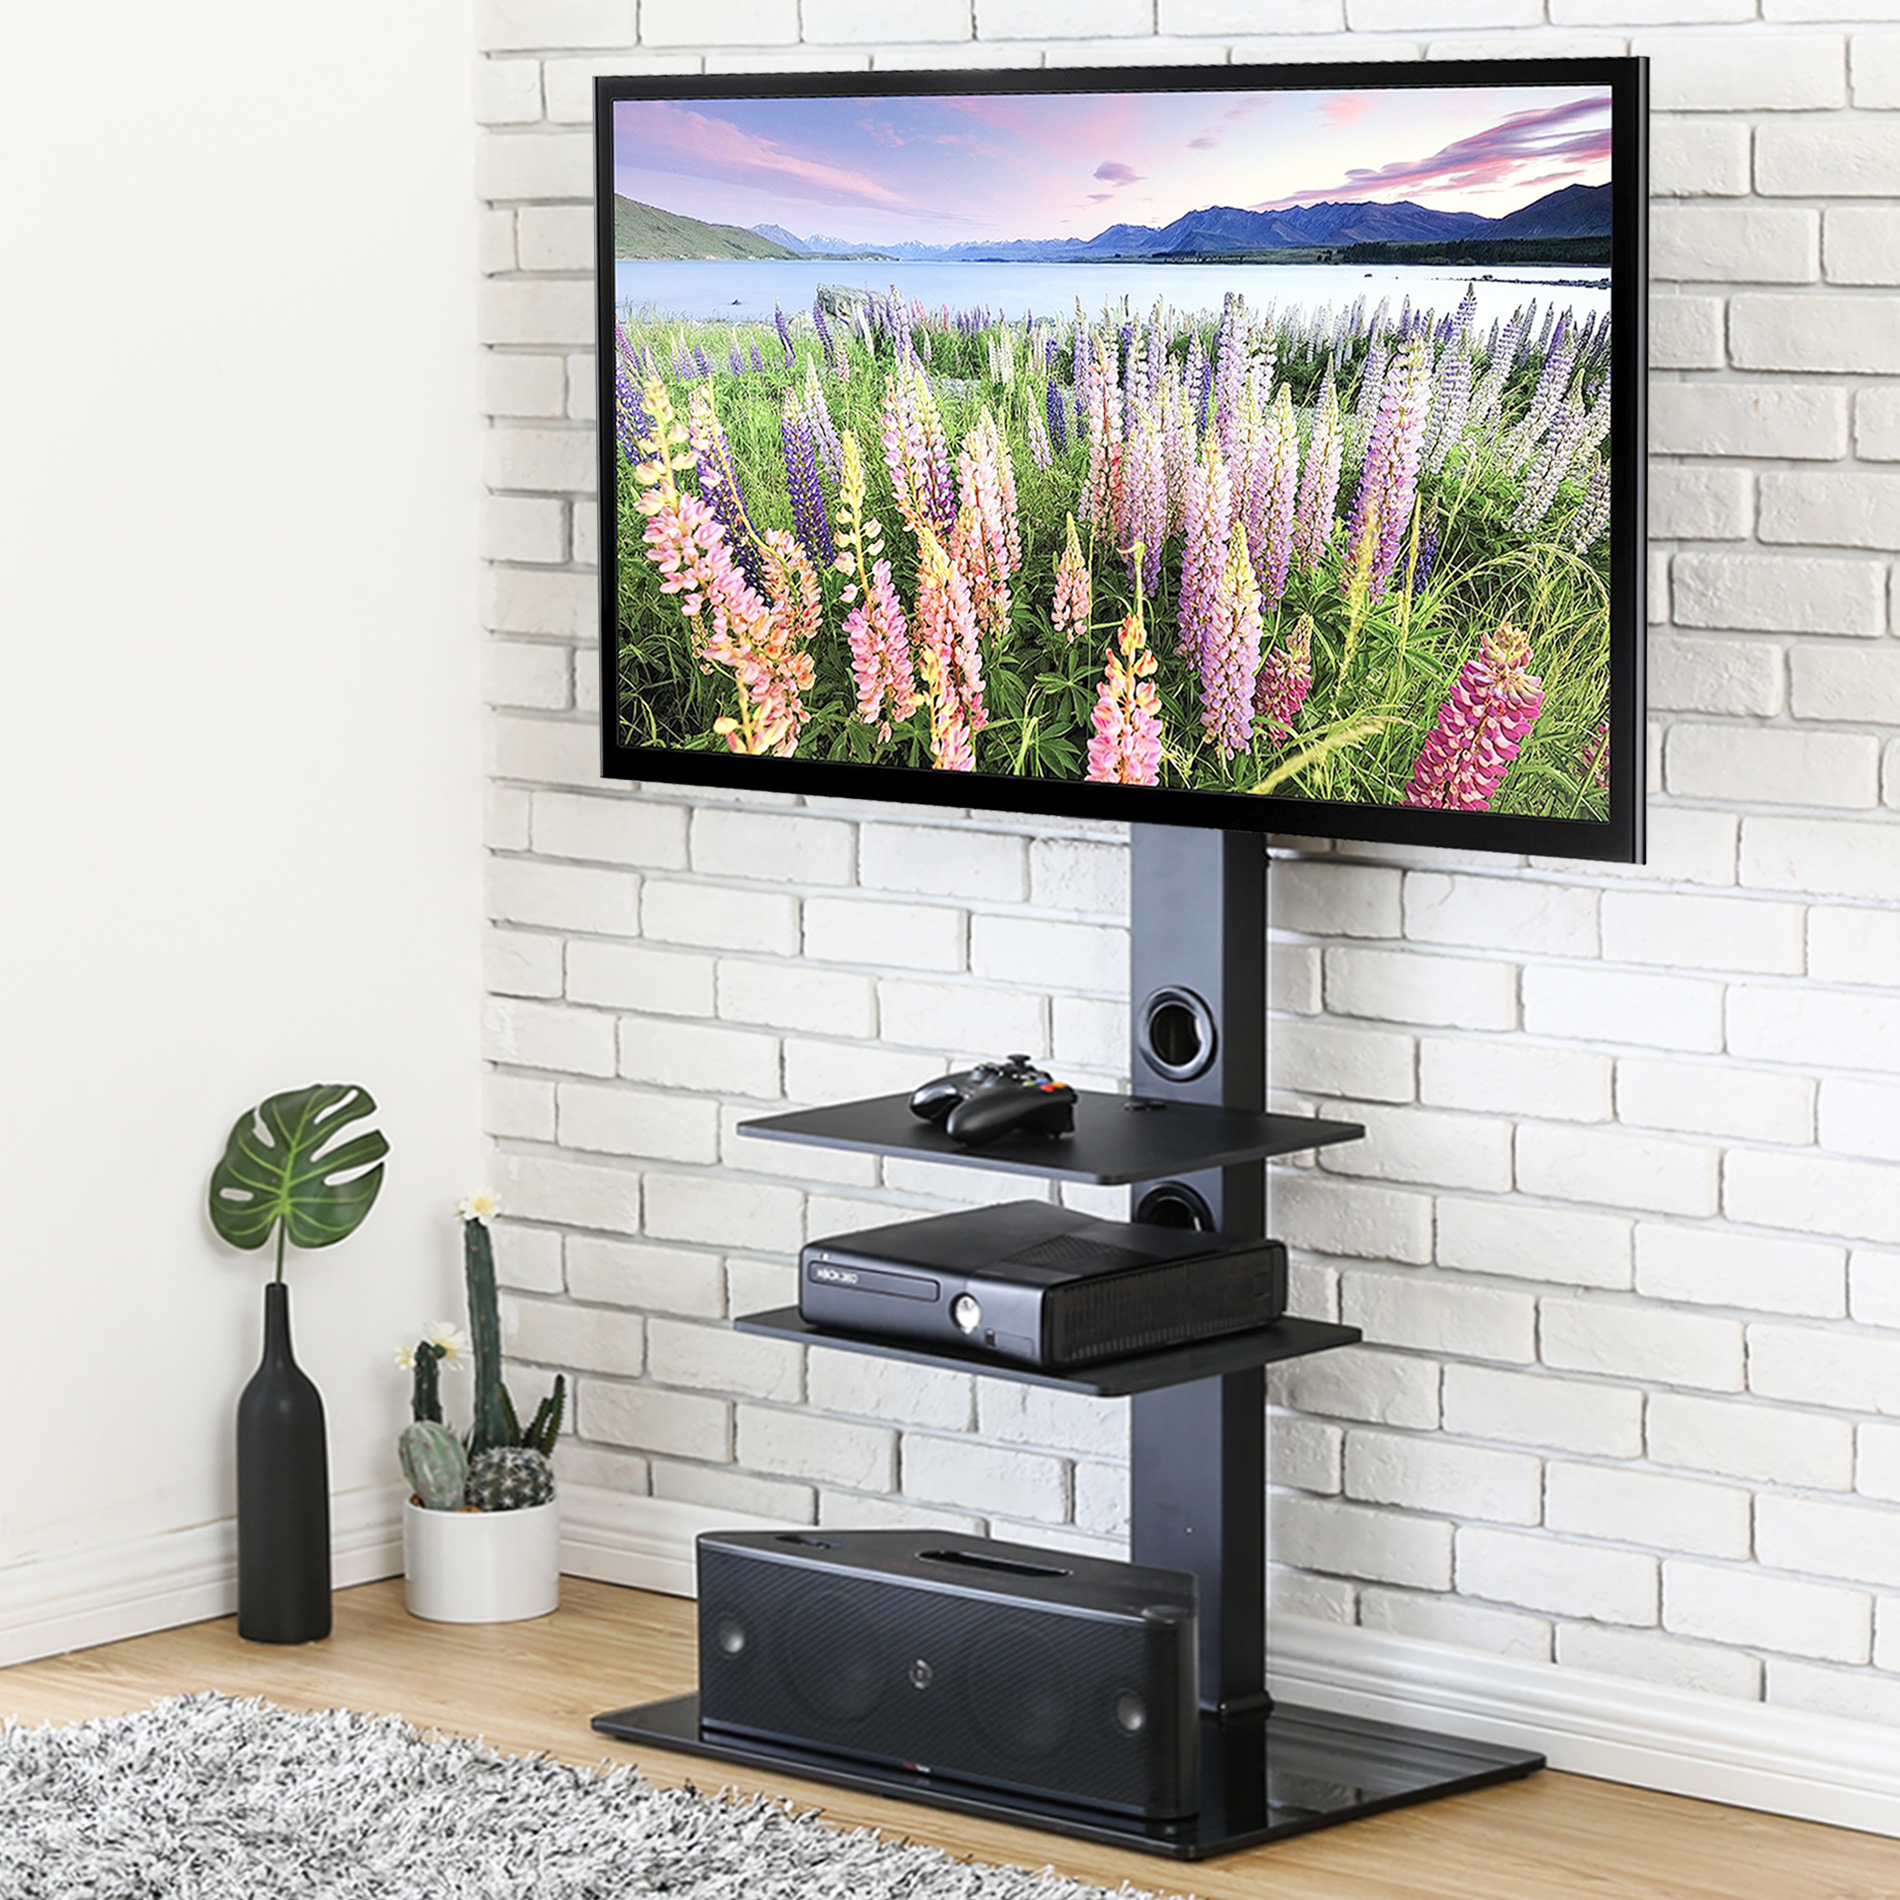 FITUEYES Floor TV Stand with mount for 32 to 65 inch TV Height Adjustable TT307001MB